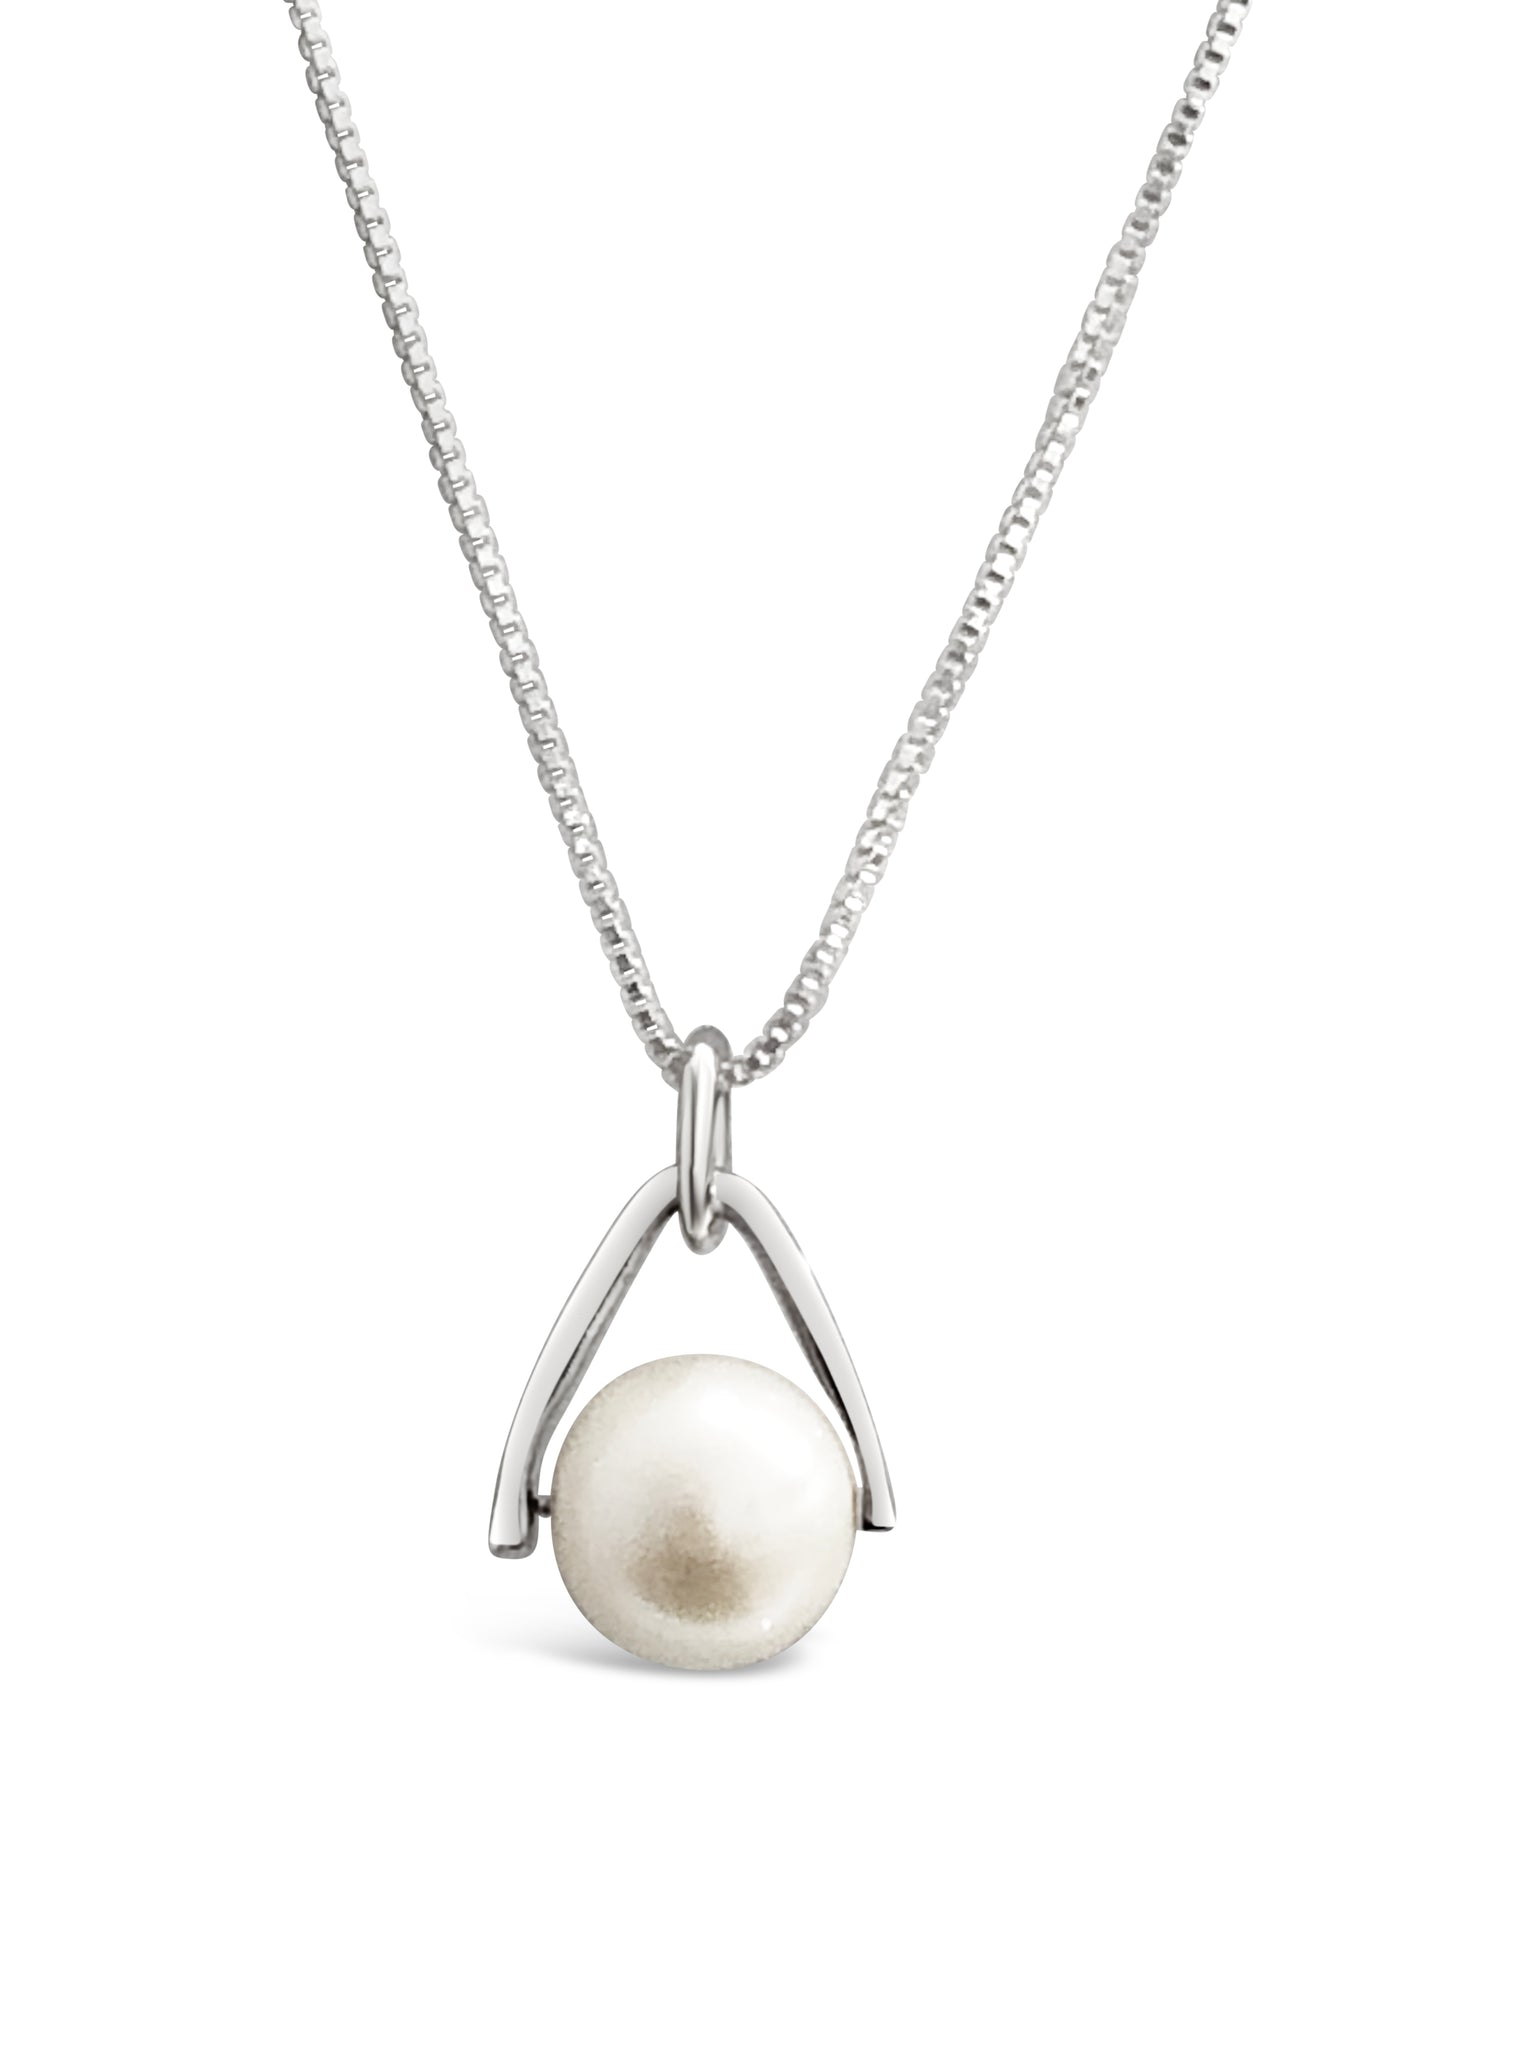 pearl pendant necklace 925 sterling silver freshwater pearl